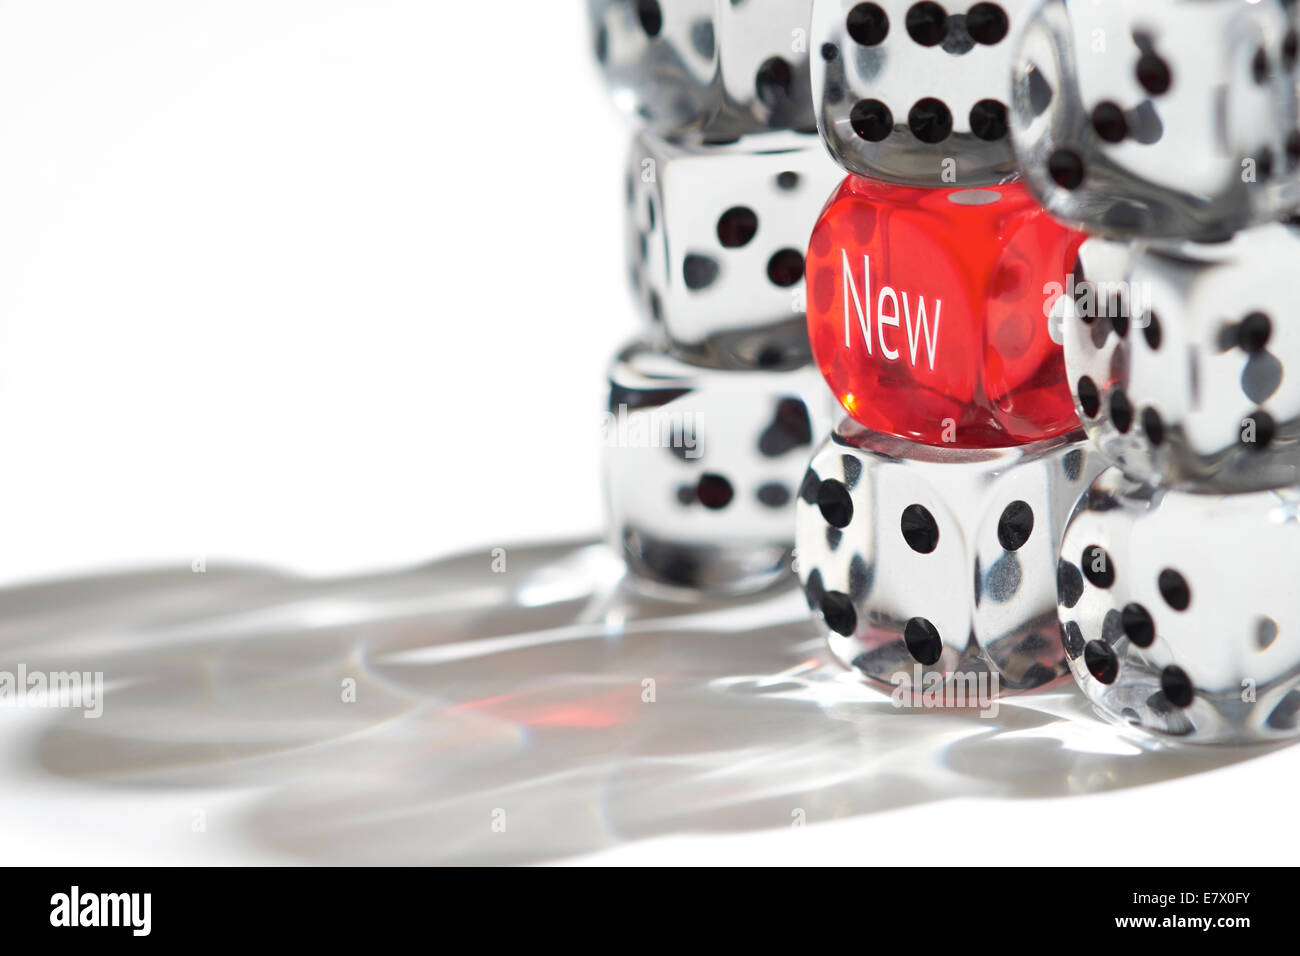 Red Dice Standing out from the crowd, New concept. - Stock Image